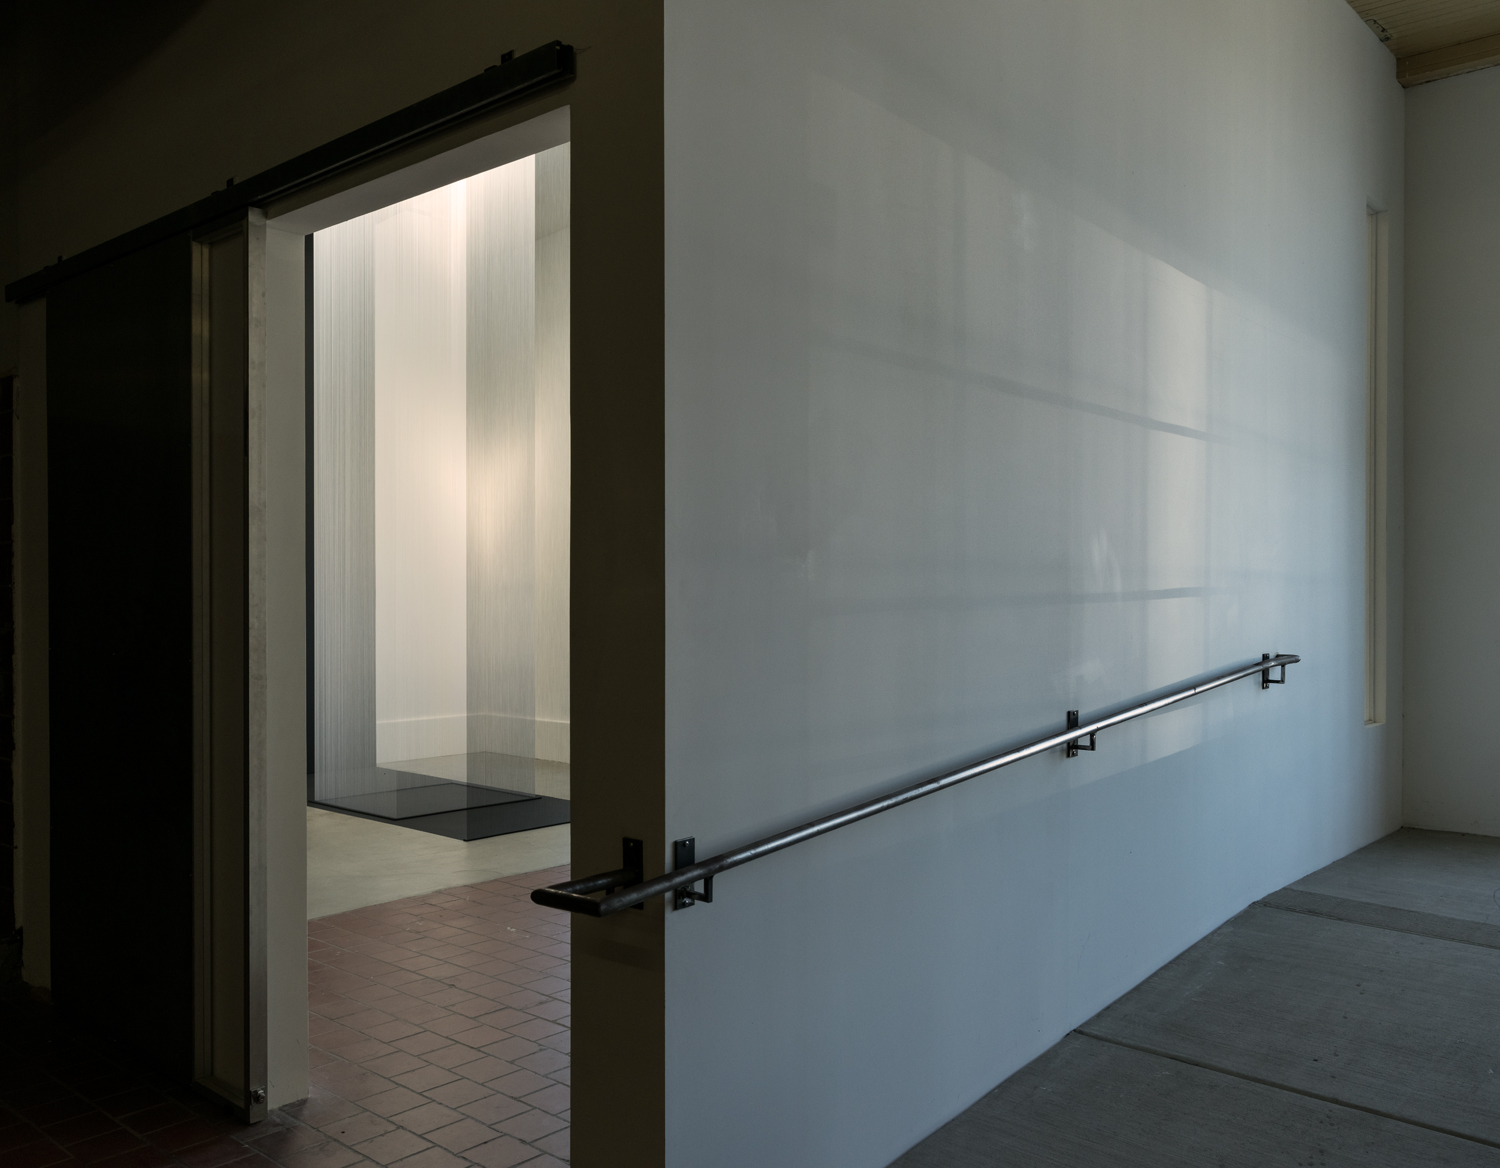 site conditioned installation  2015, ICE Gallery   Photos: Philipp Scholz Rittermann